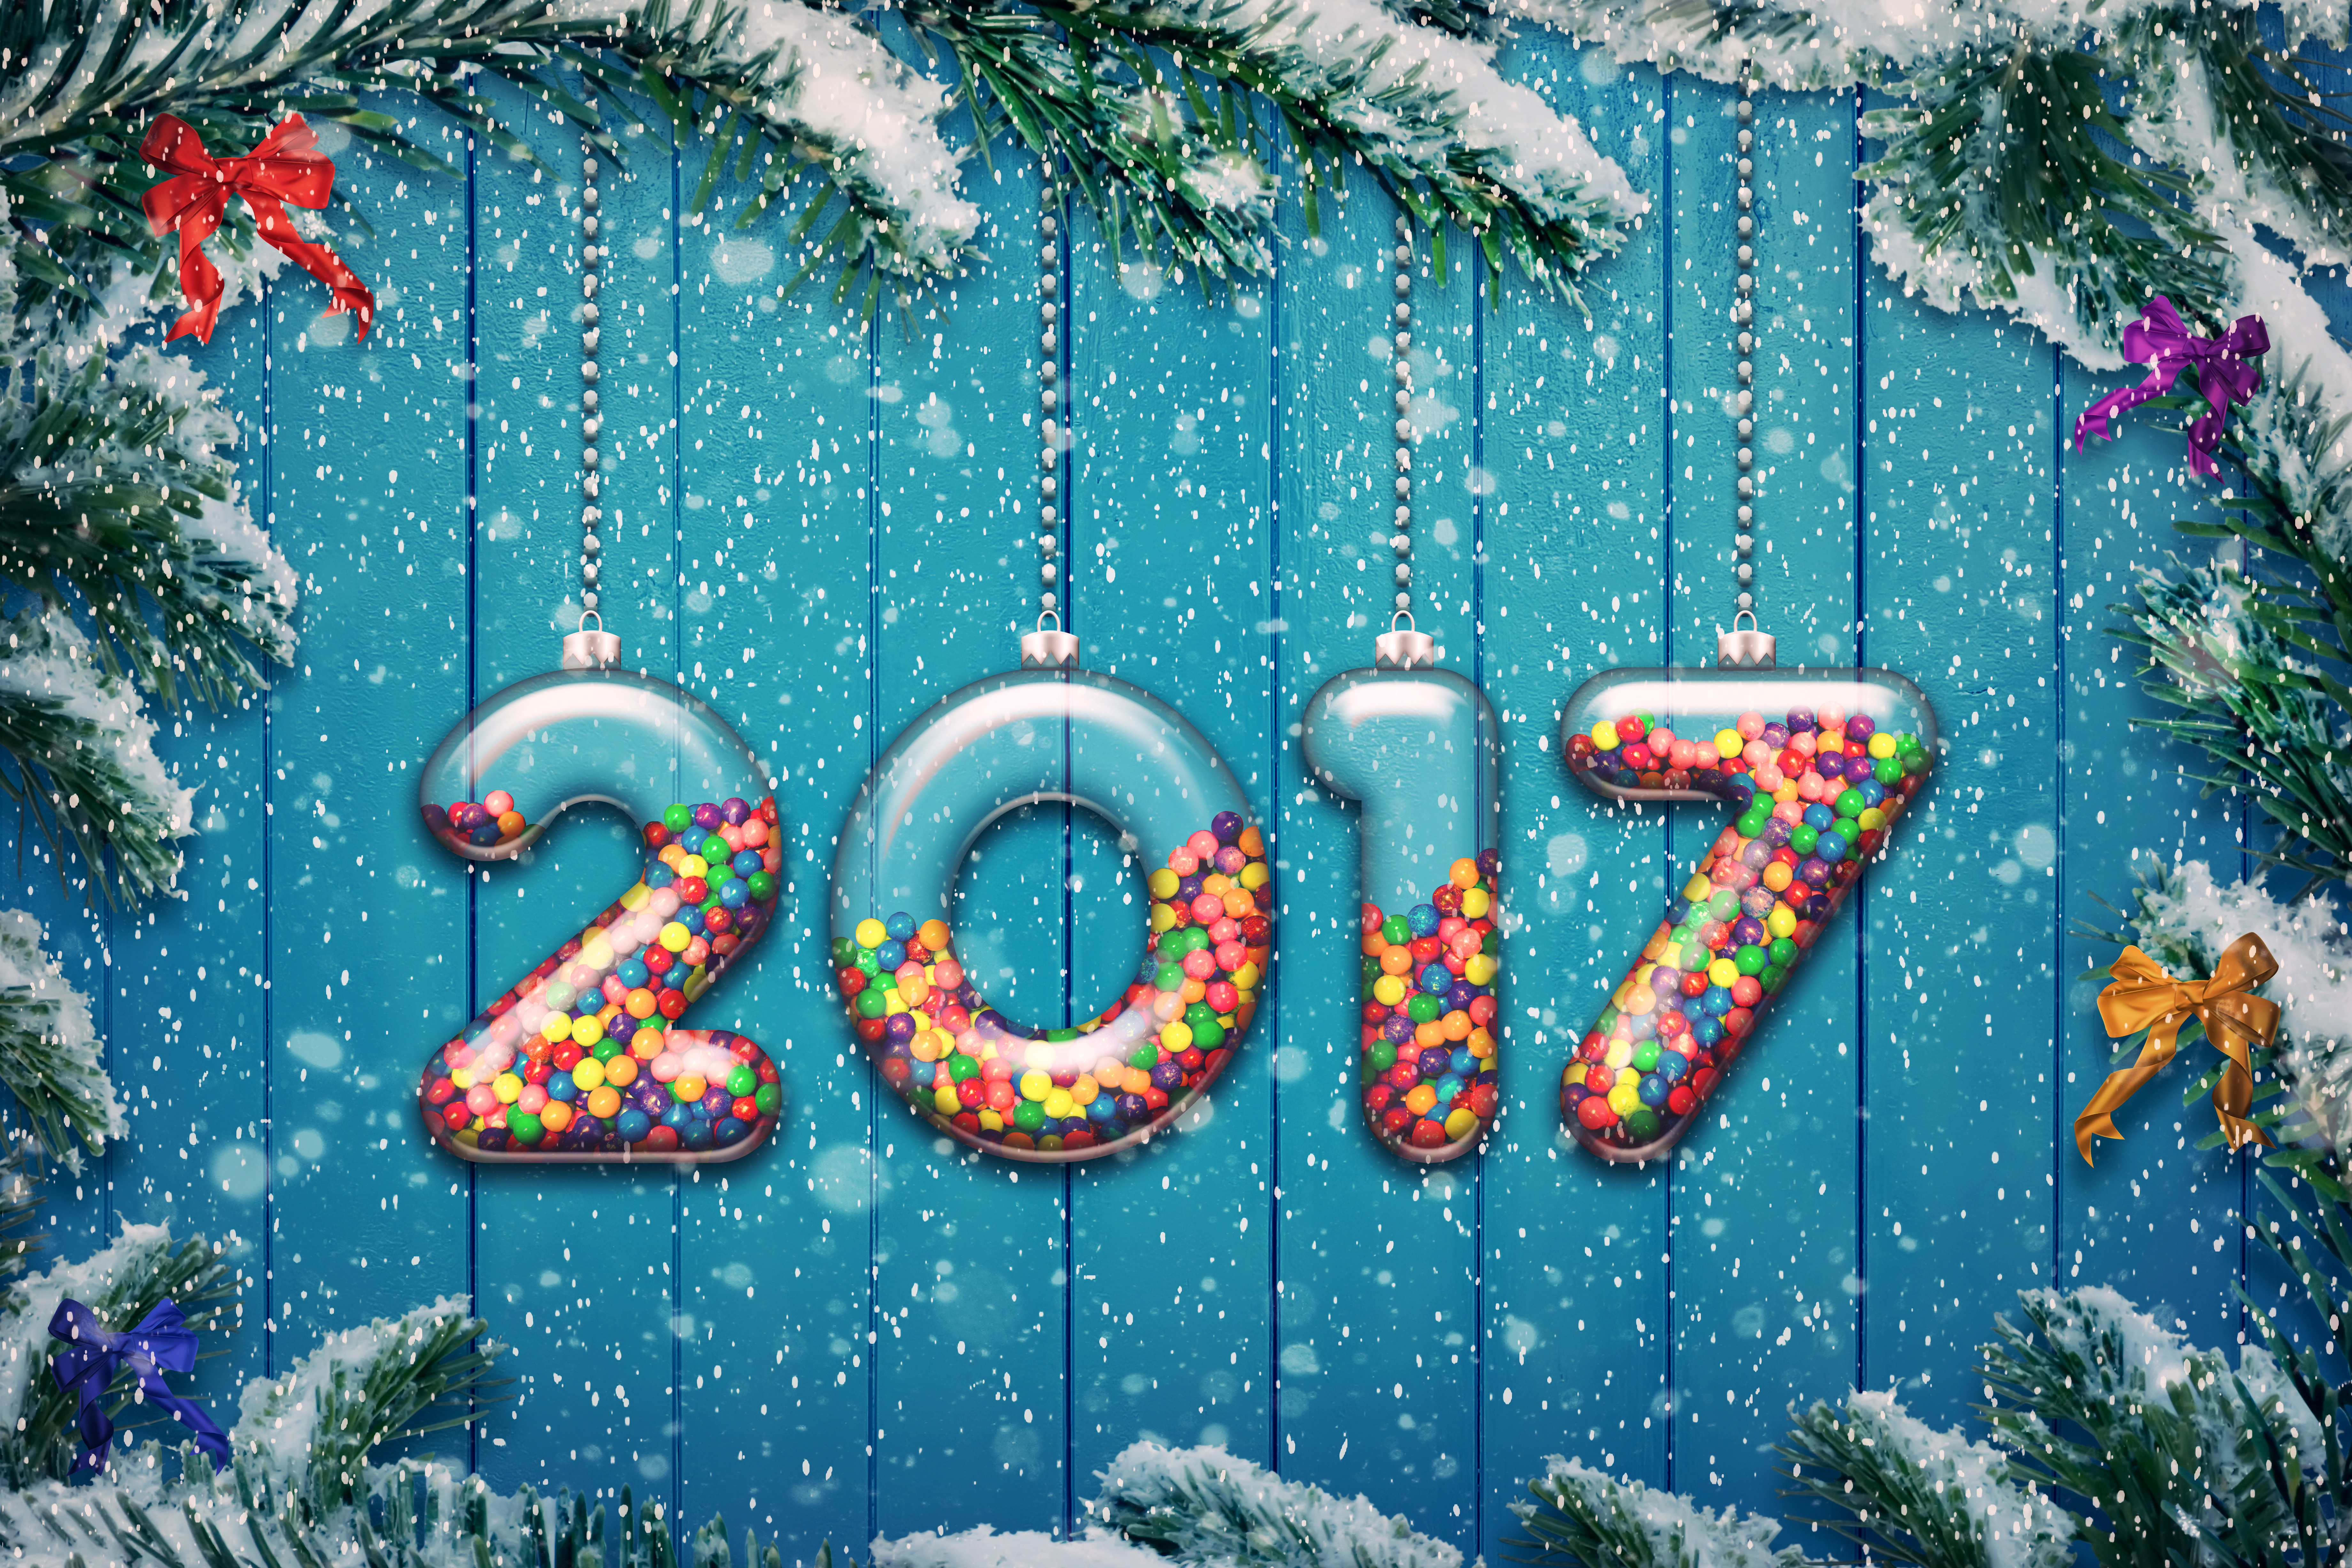 68 New Year 2017 Hd Wallpapers Background Images Wallpaper Abyss